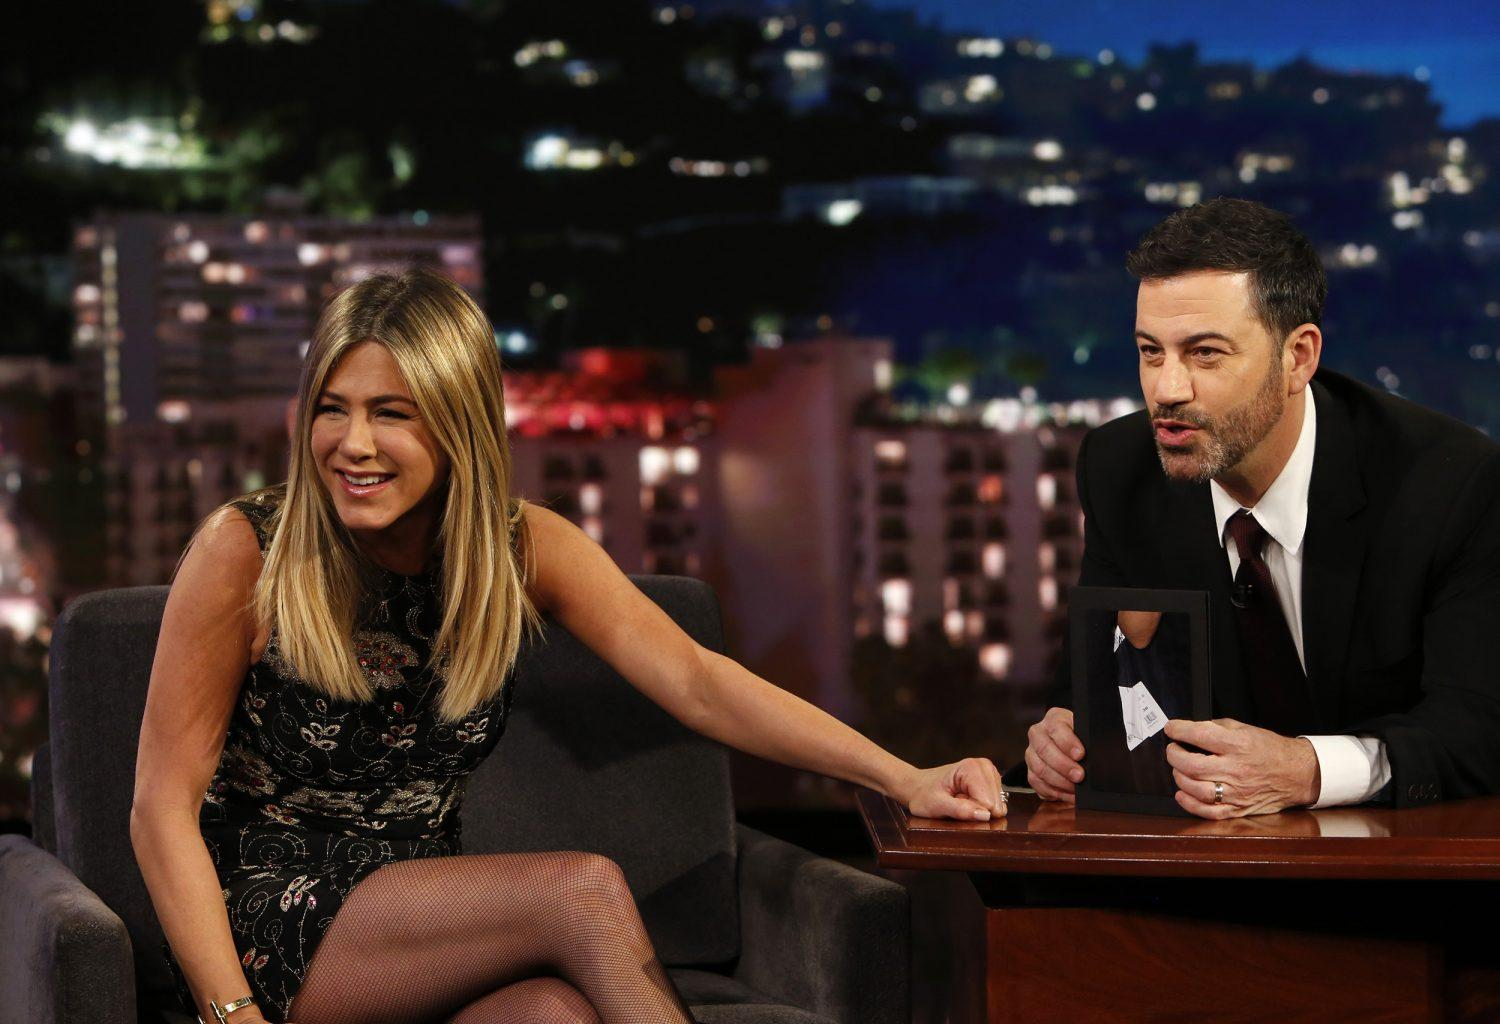 Jennifer Aniston Plays Joke On Jimmy Kimmel After He Asks Her Not To Serve Turkey At Her Thanksgiving Party - Check Out His Priceless Reaction!